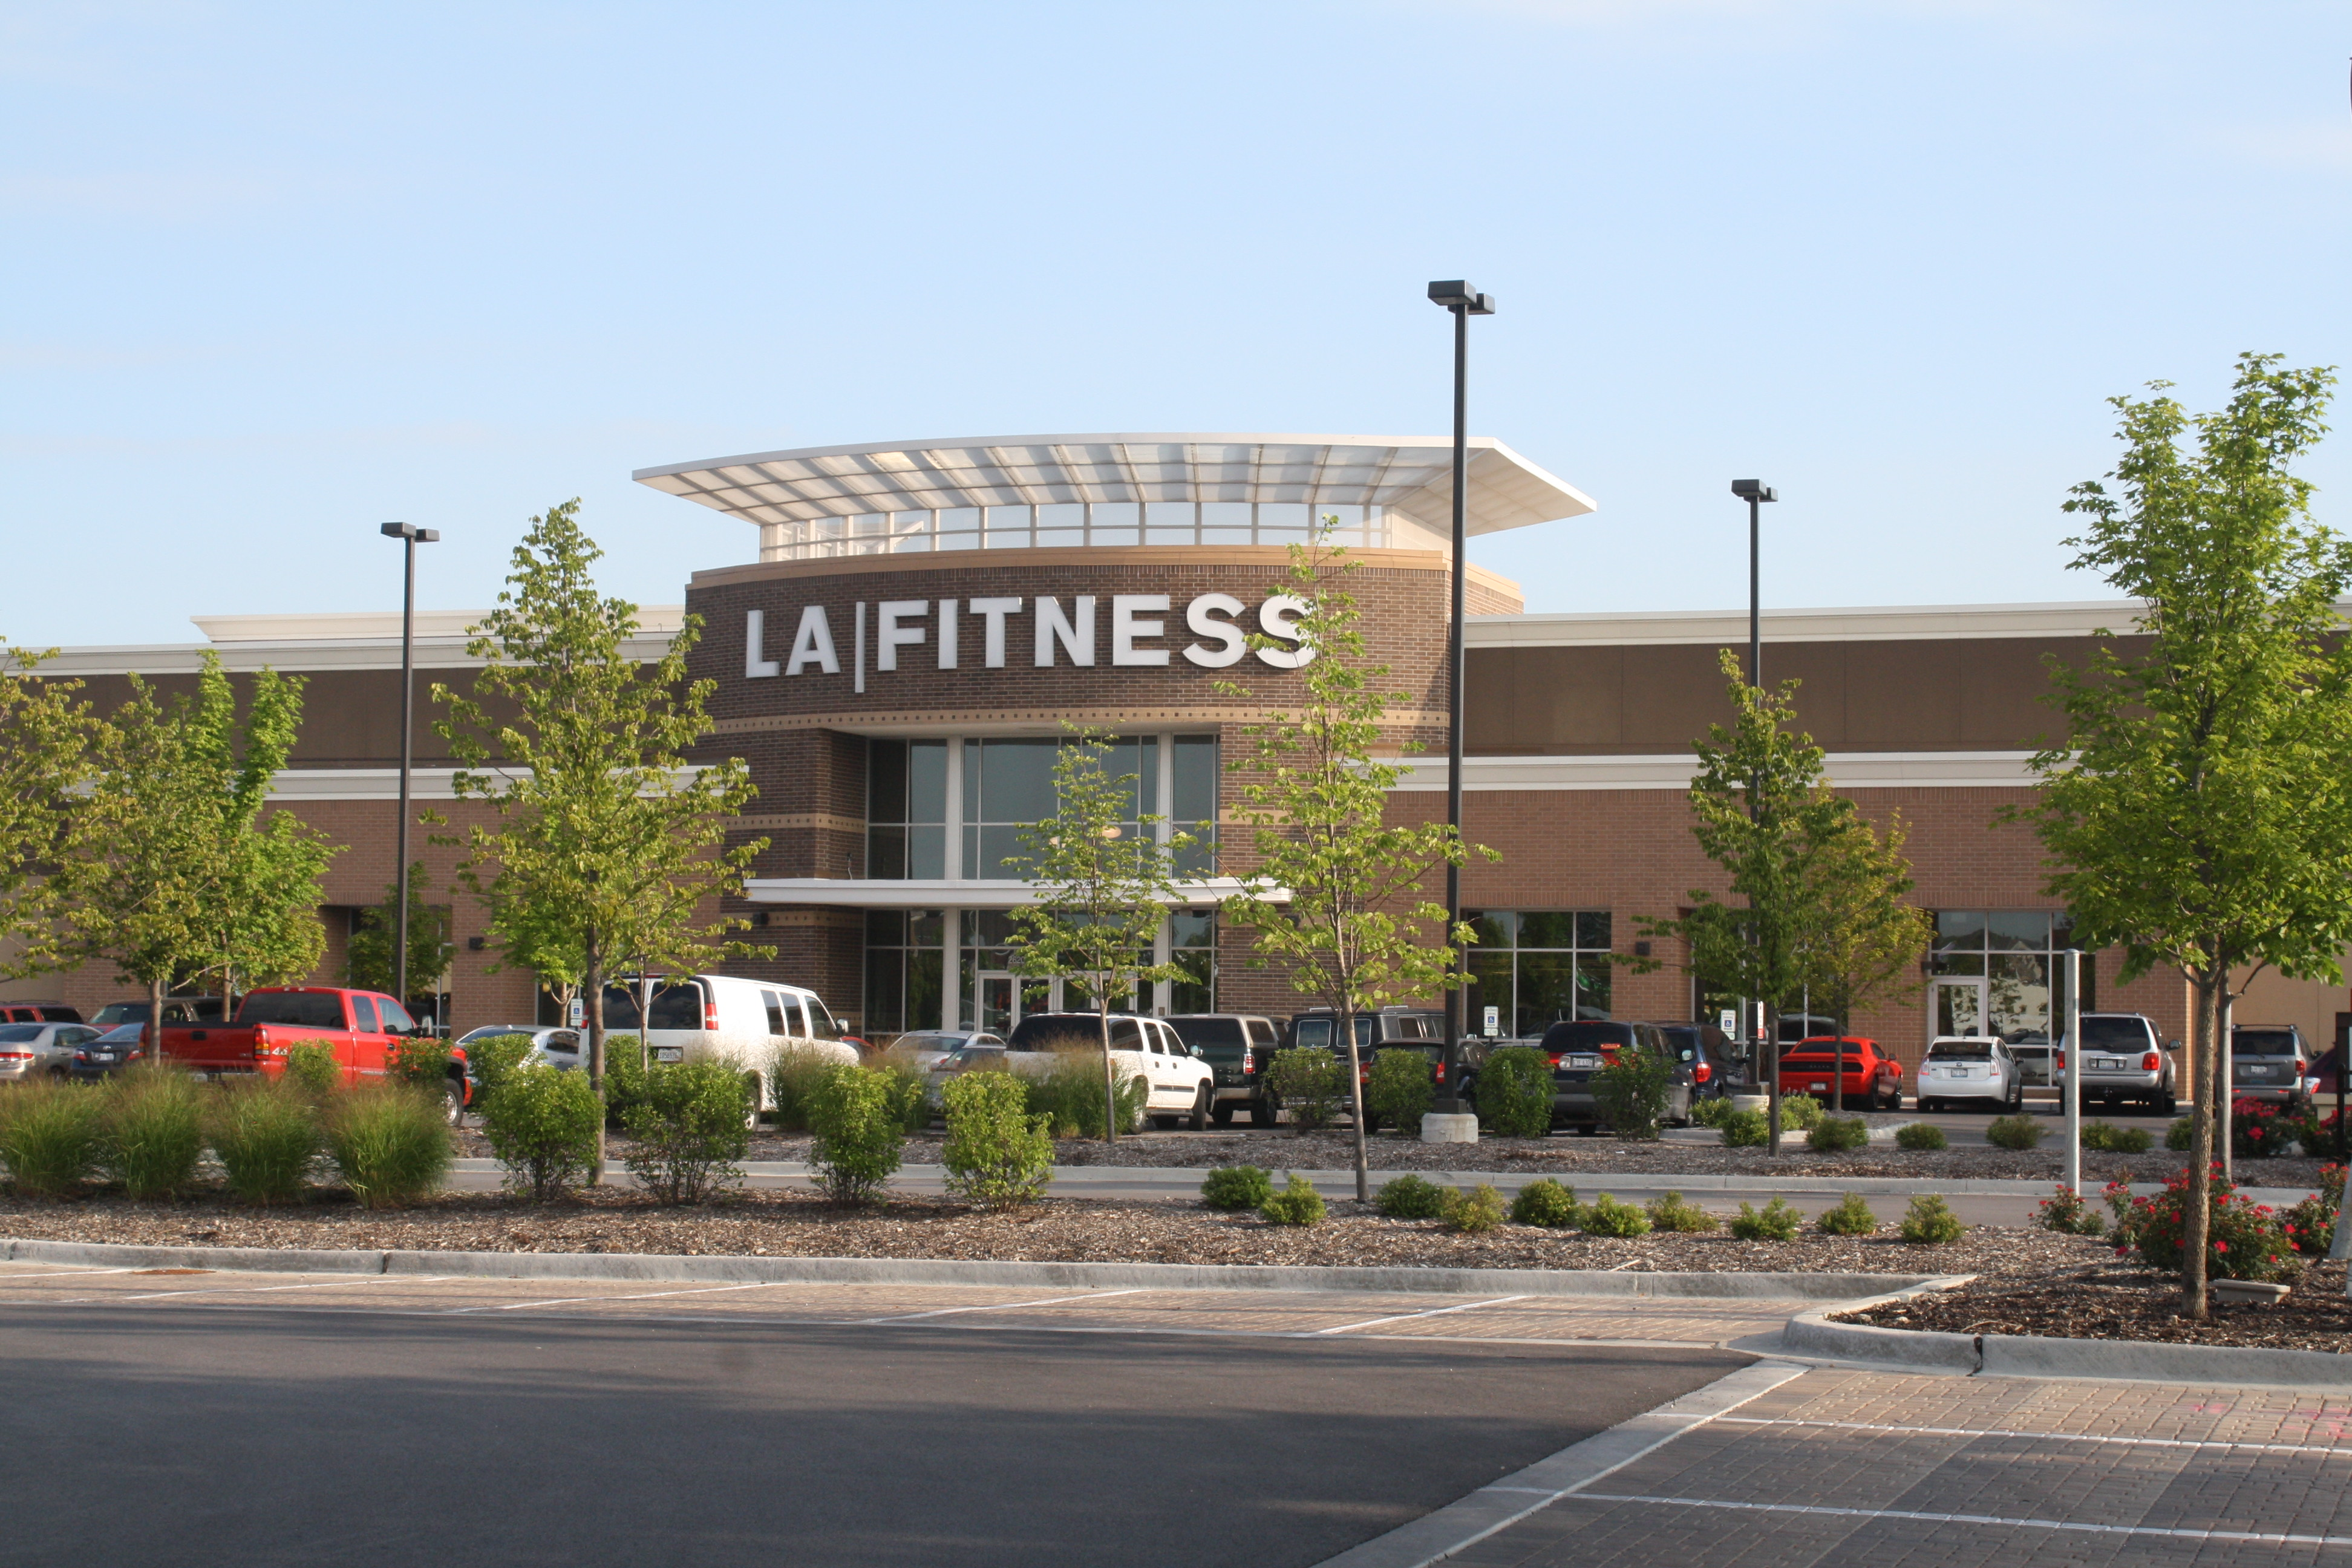 la fitness for sale